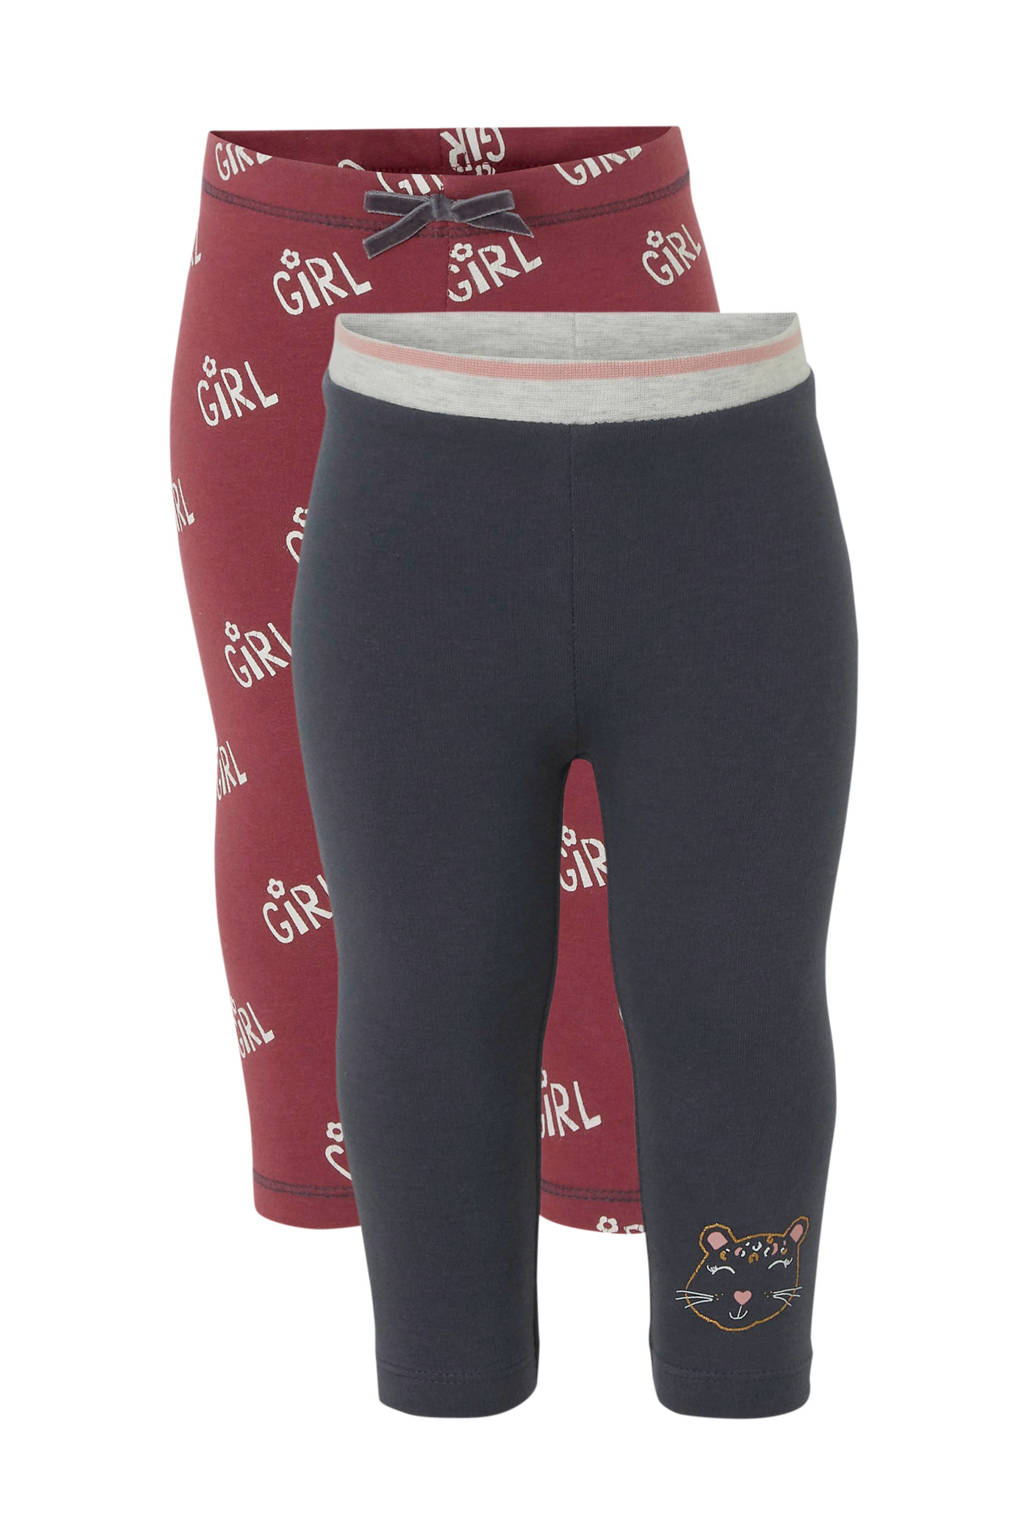 C&A Baby Club legging met all over print donkerblauw/bordeauxrood - set van 2, Donkerblauw/bordeauxrood